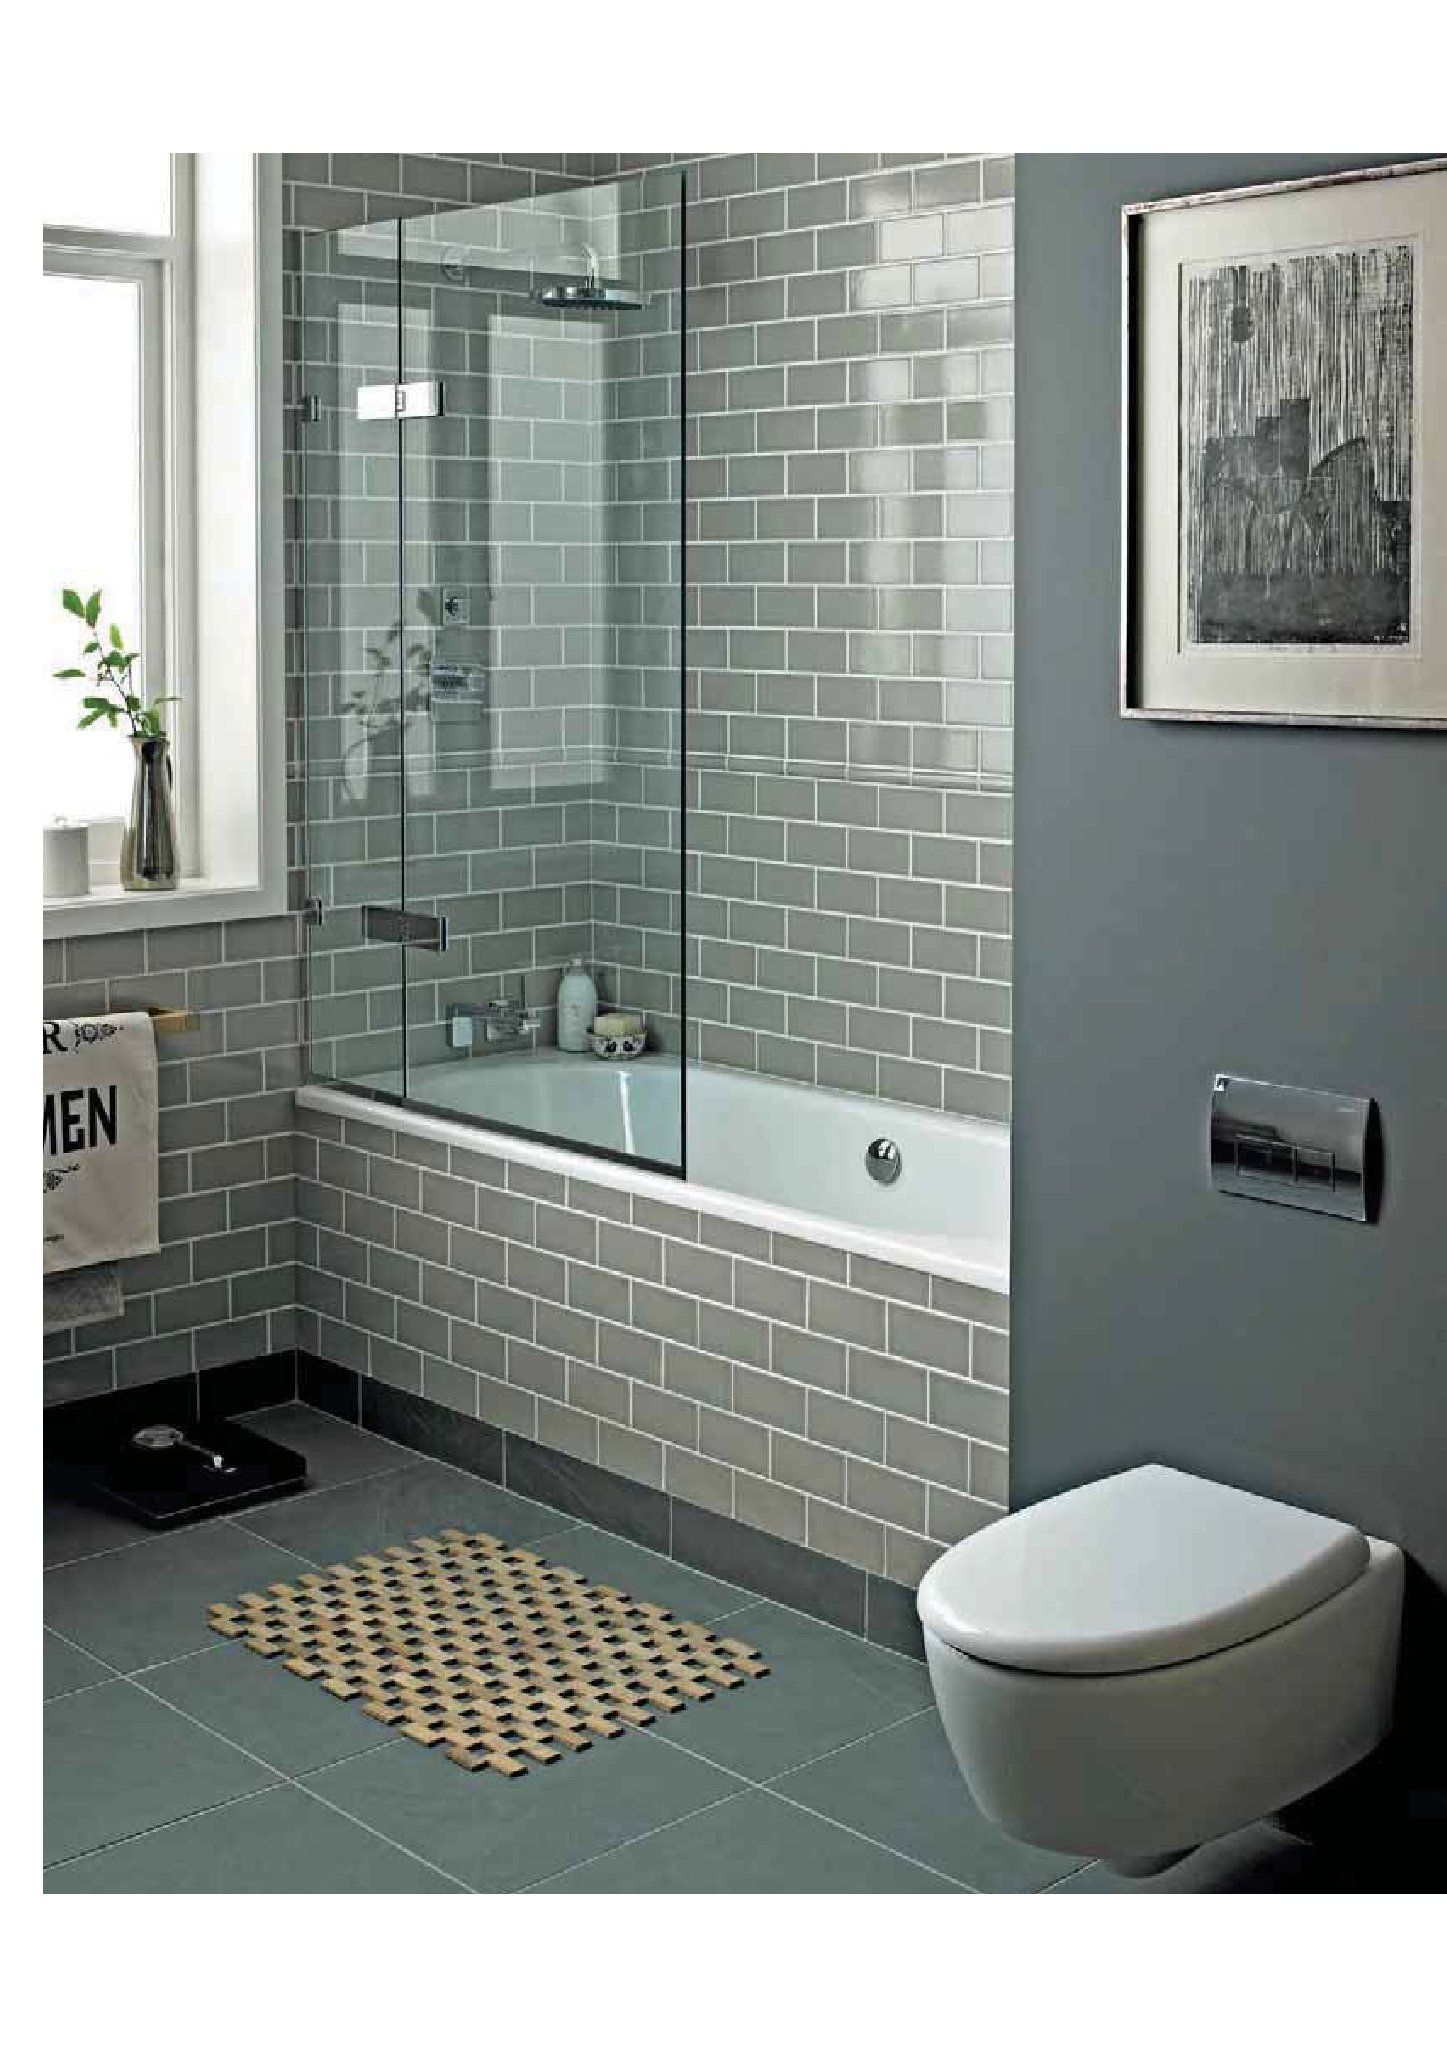 Bathroom modern this method to clean bathroom tiles is 100 times more - Smoke Glass Subway Tile Shower Ideas Bathroombathtub